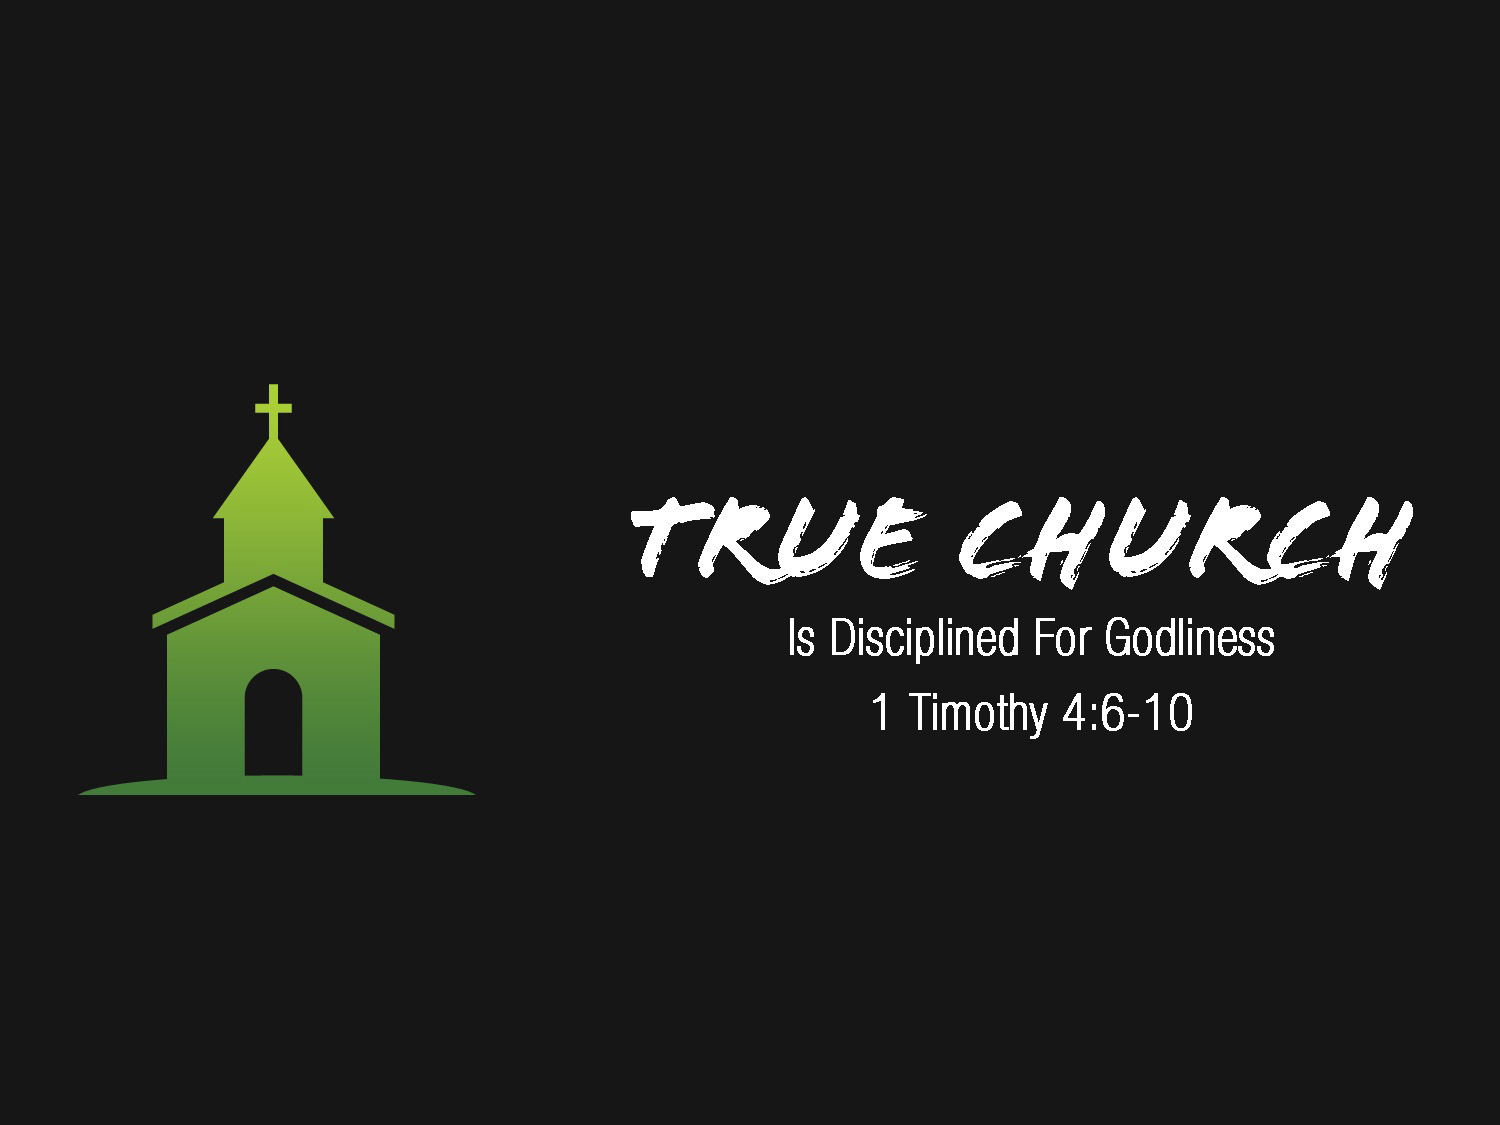 1 Timothy 4v6-11 True Church is Disciplined For Godliness